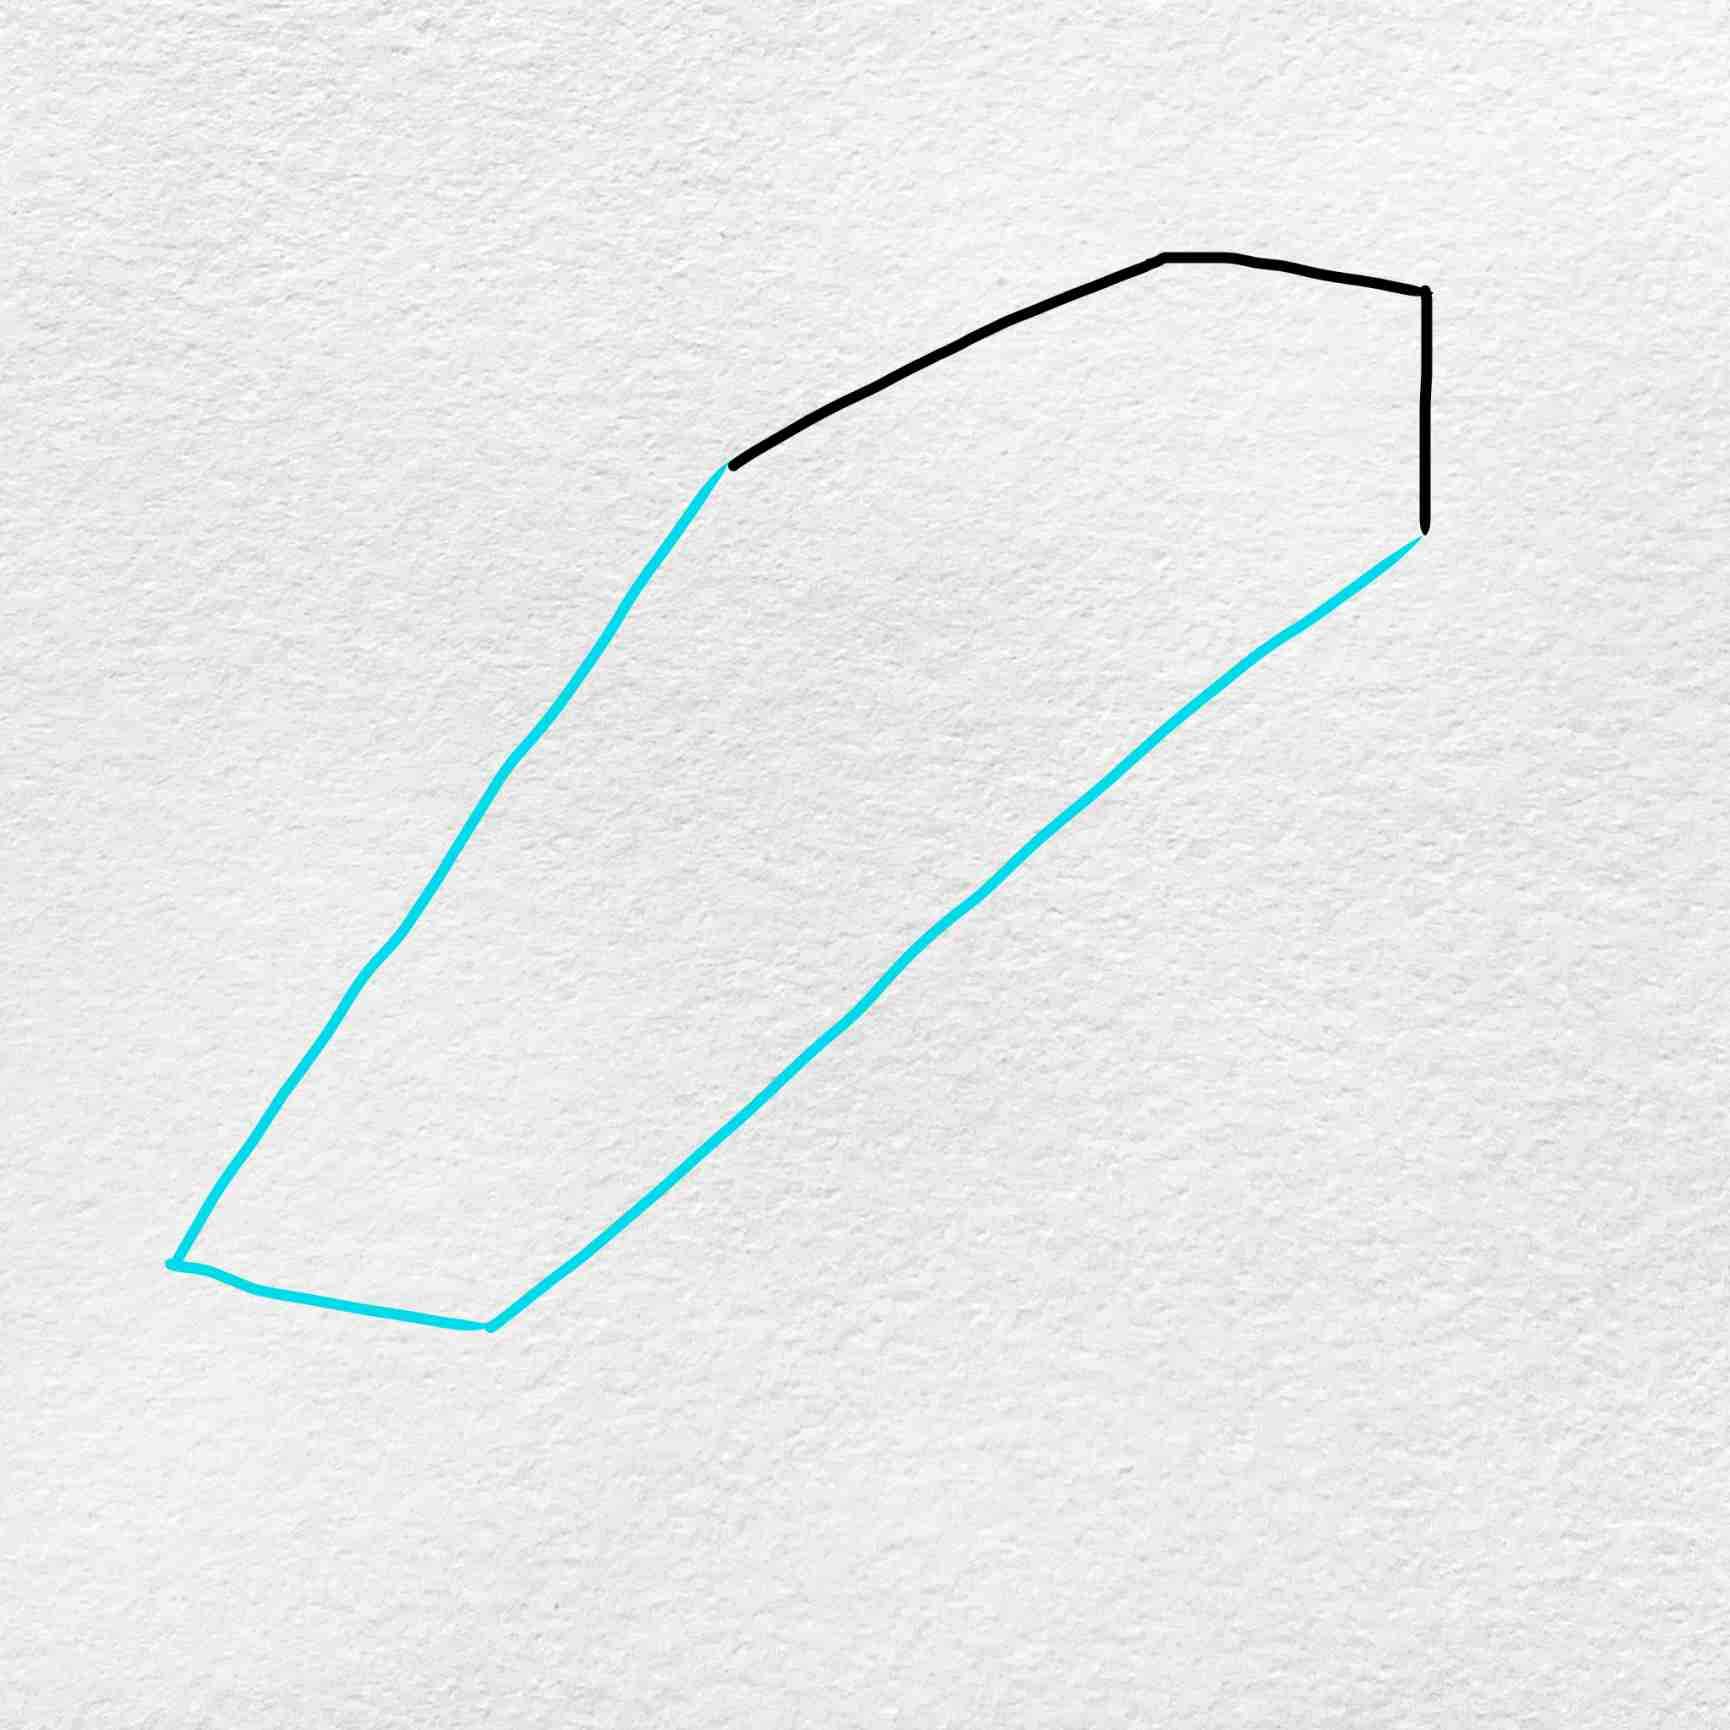 How To Draw A Coffin: Step 2